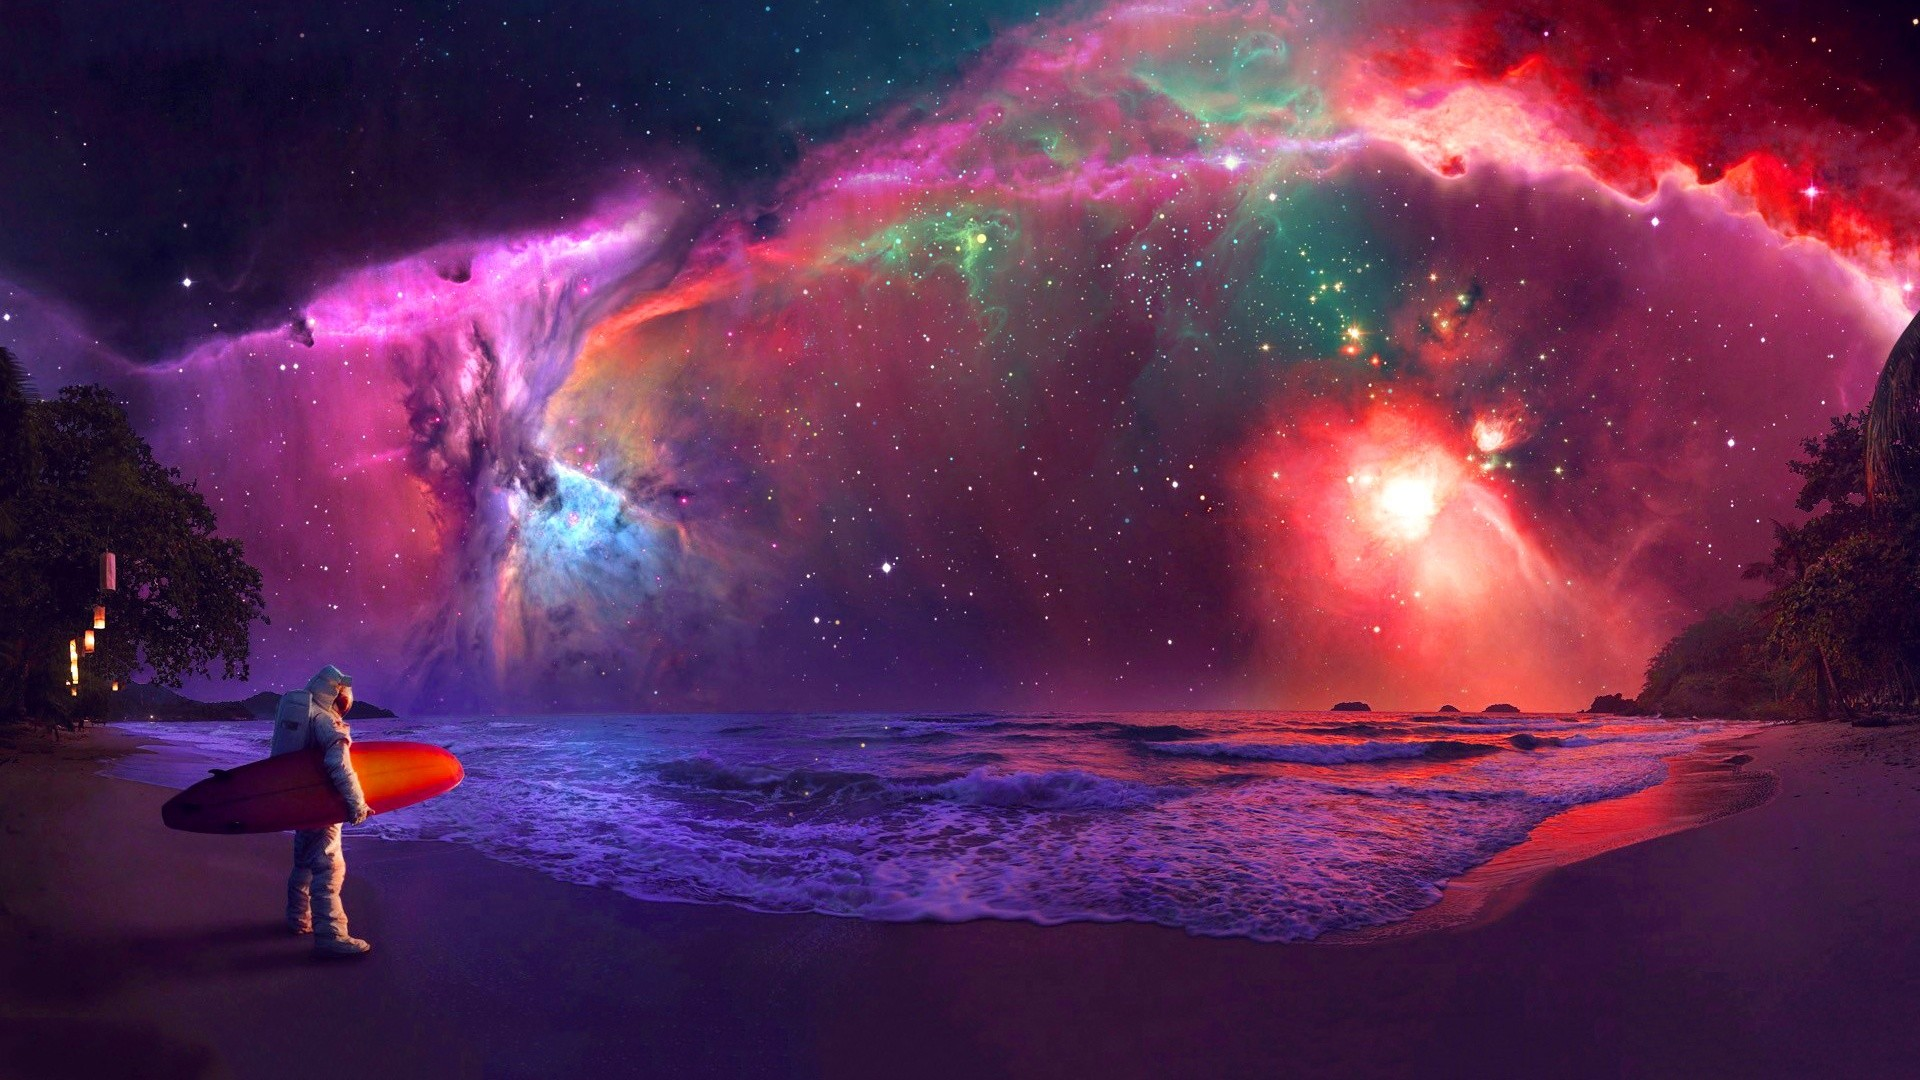 galaxy wallpapers 1366x768 (70+ images)